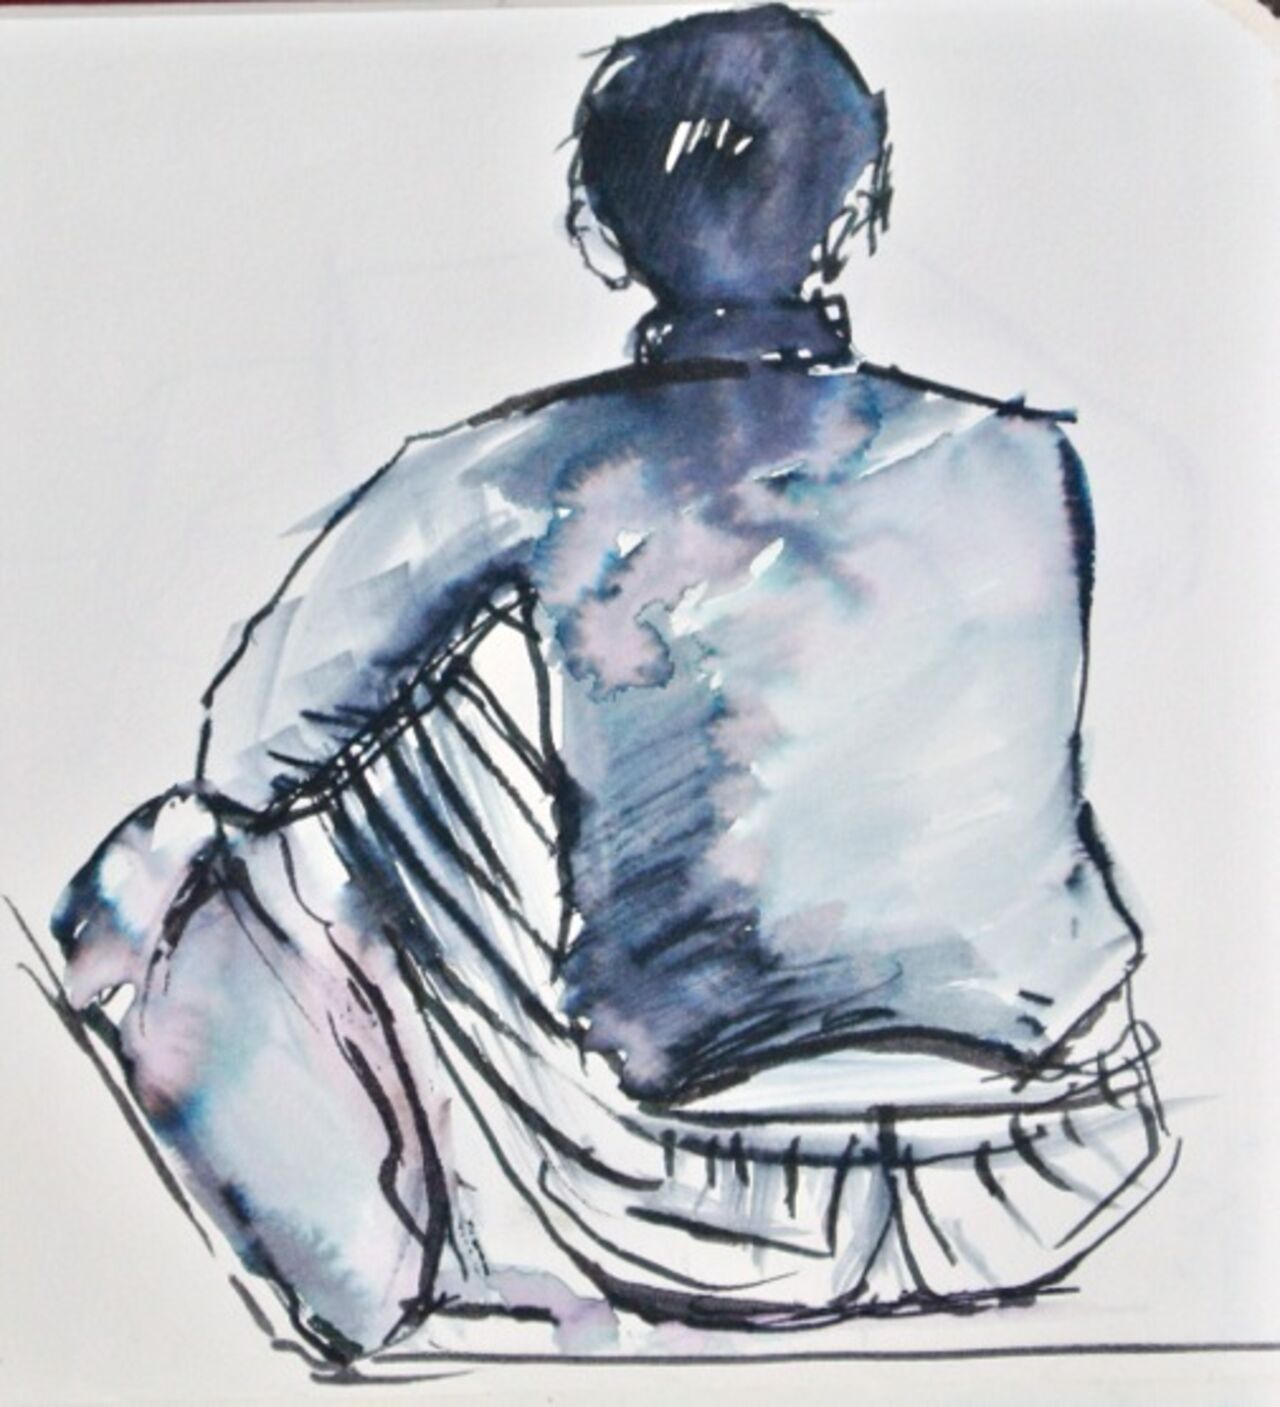 A blue sketch of a person sat down, seen from behind.